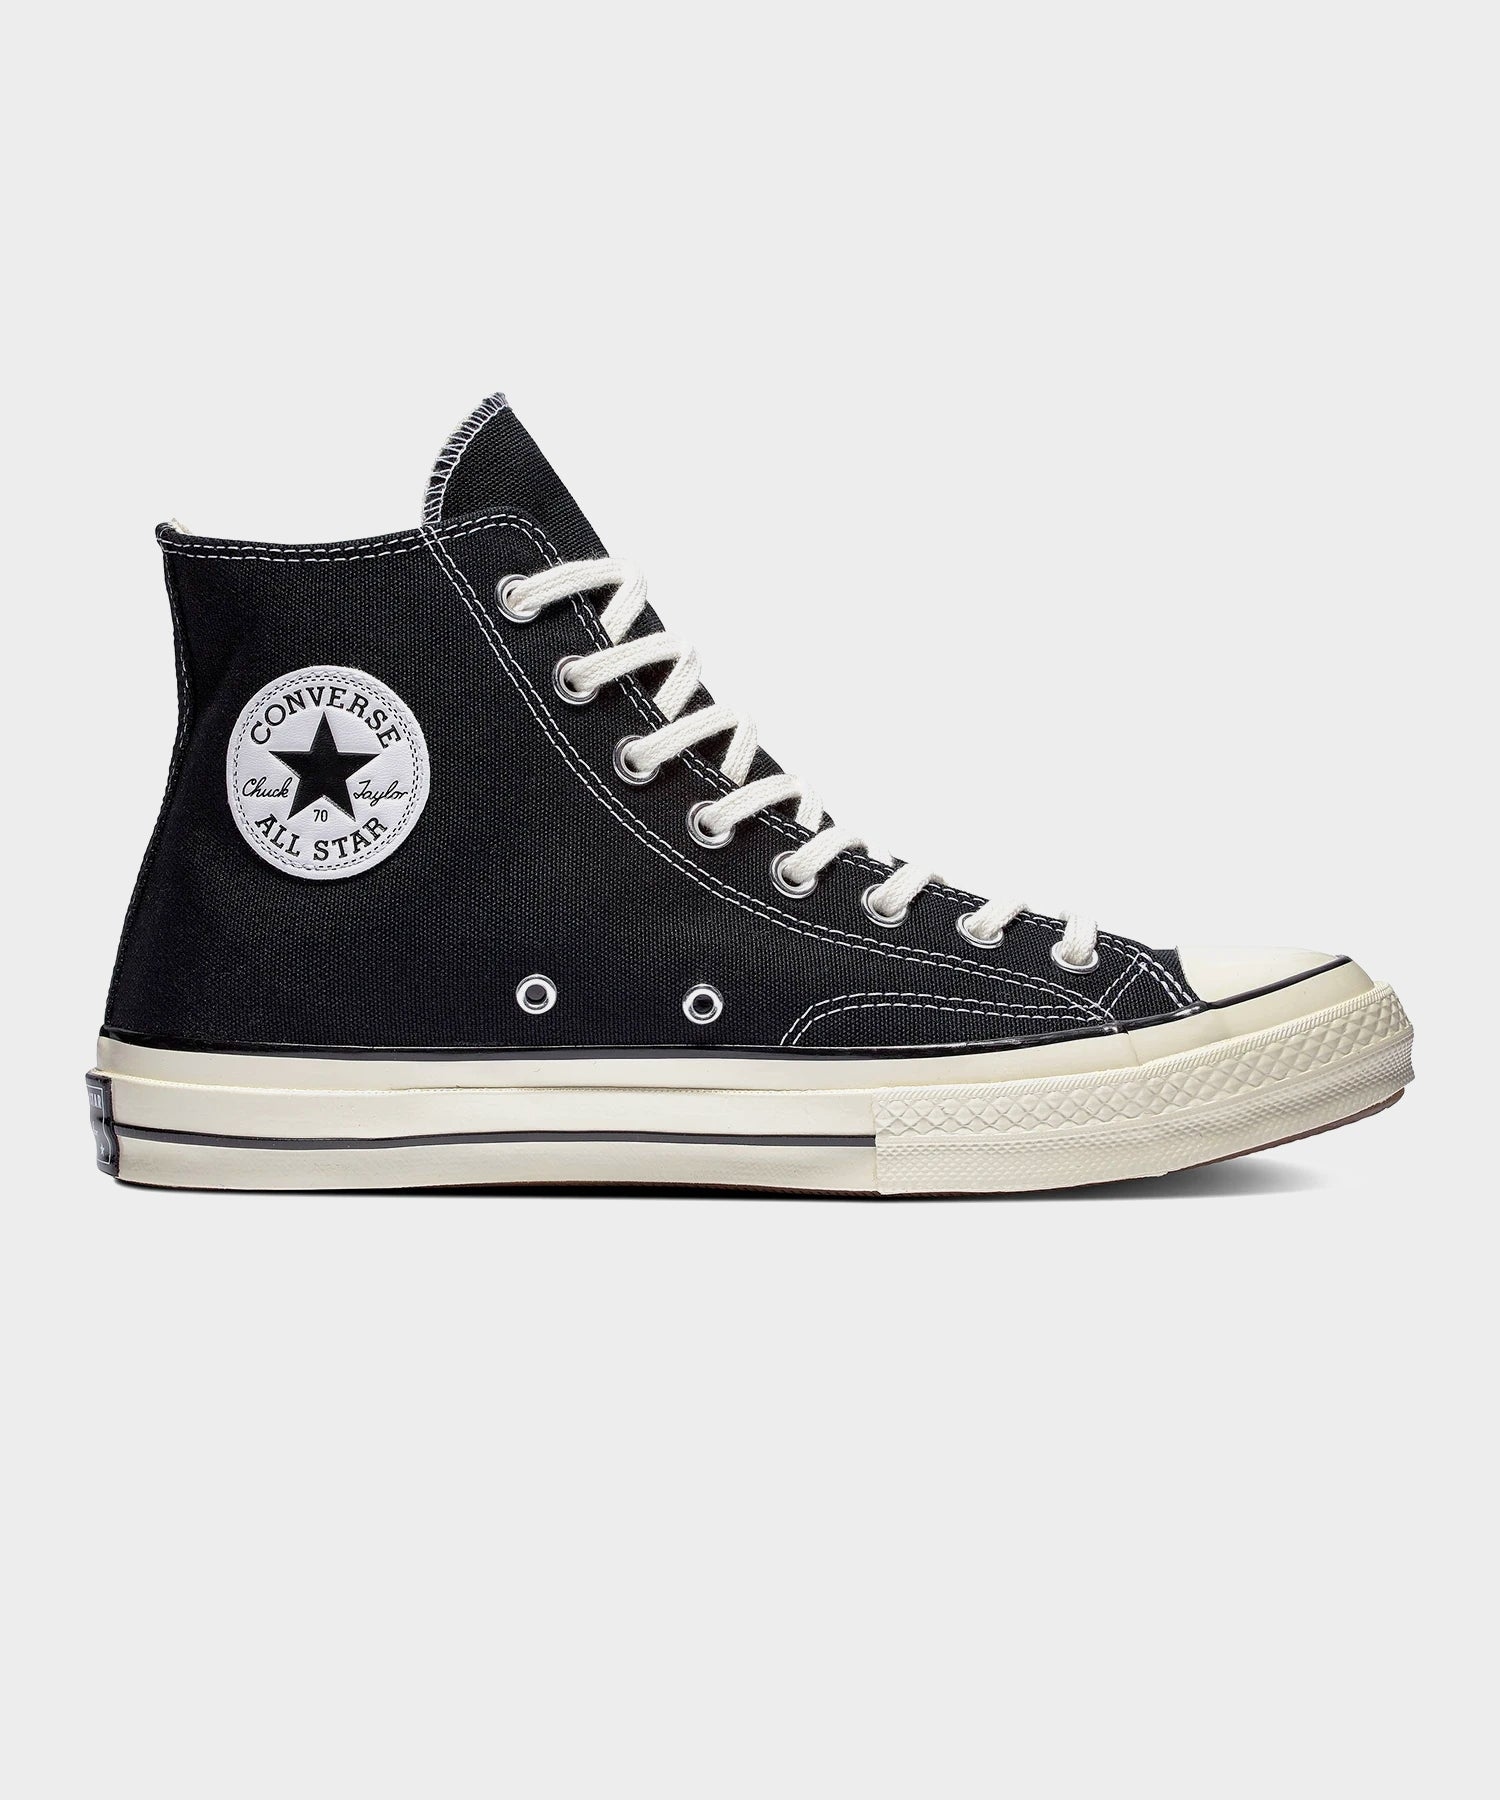 Converse Chuck 70 High Top Black